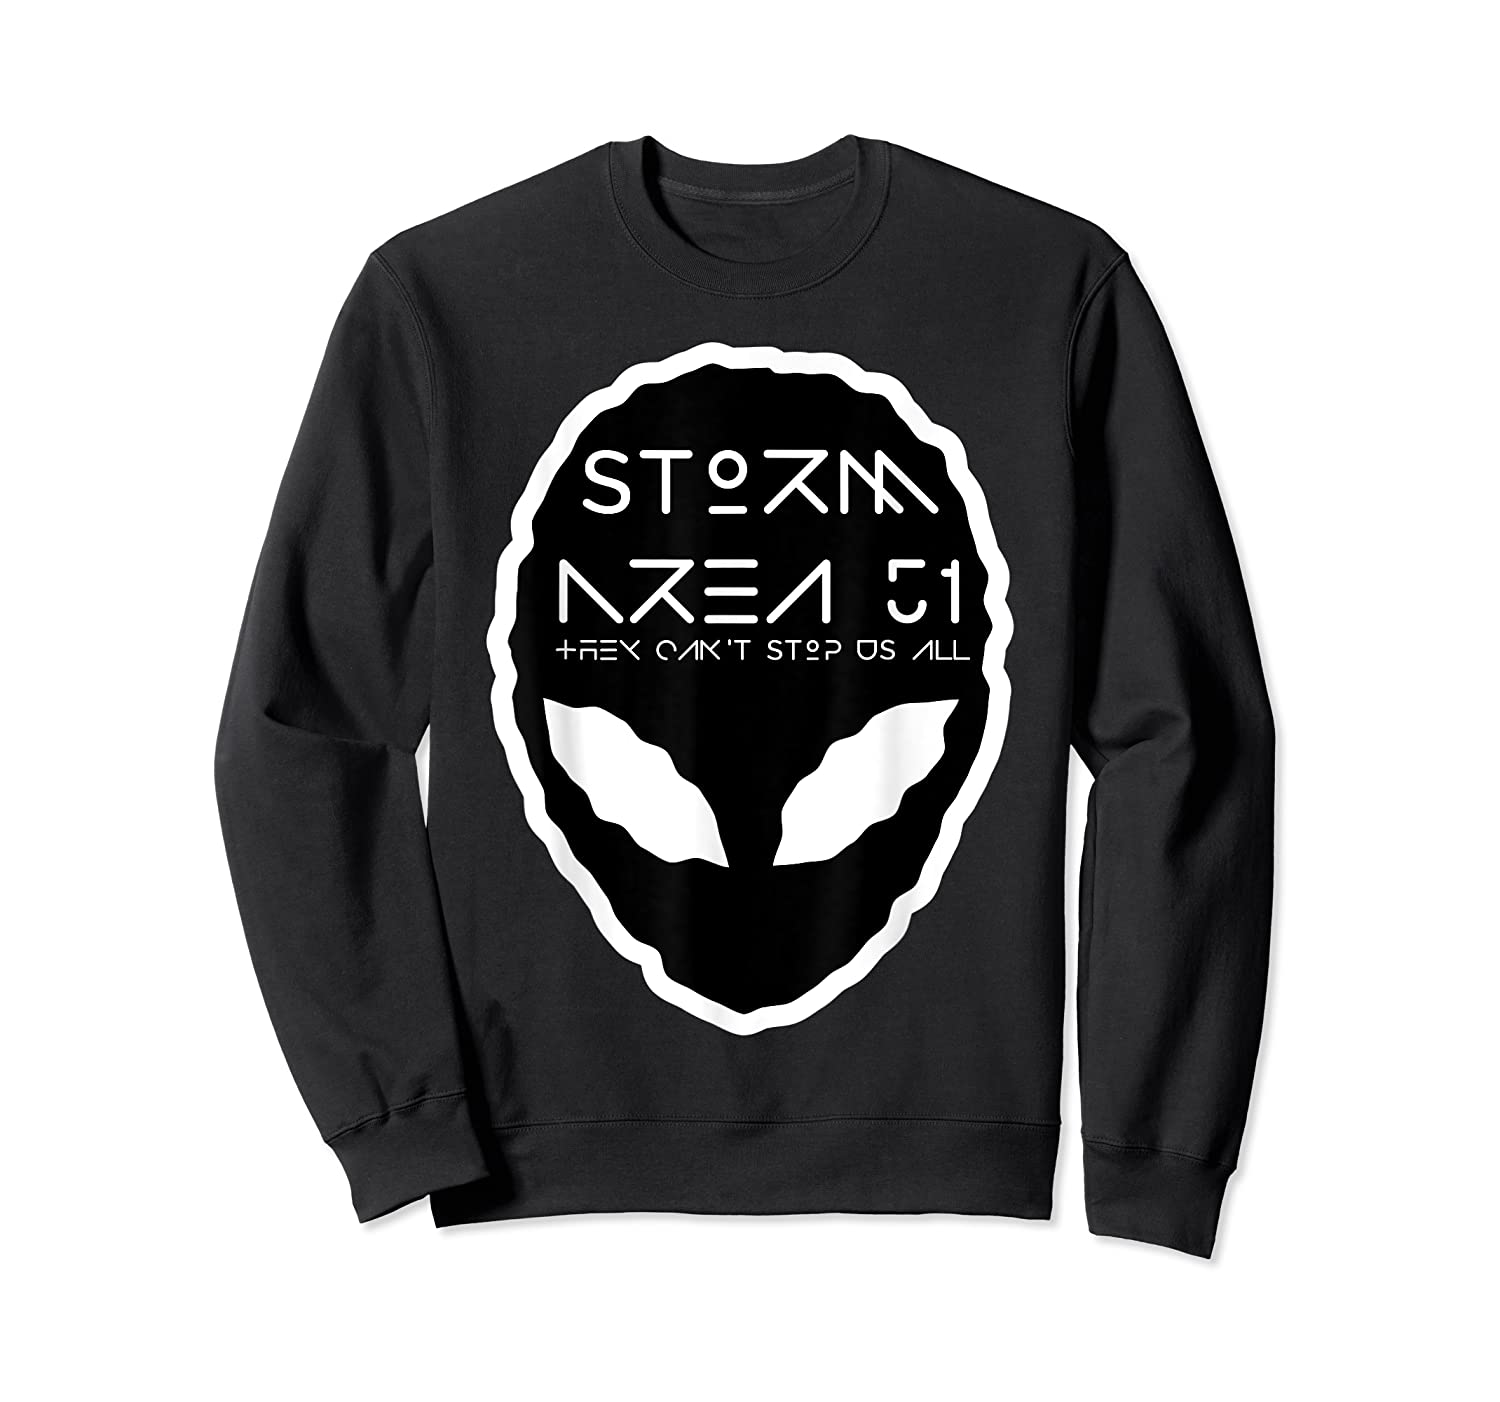 Storm Area 51 They Cant Stop Us All Alien Face September 20 Shirts Crewneck Sweater